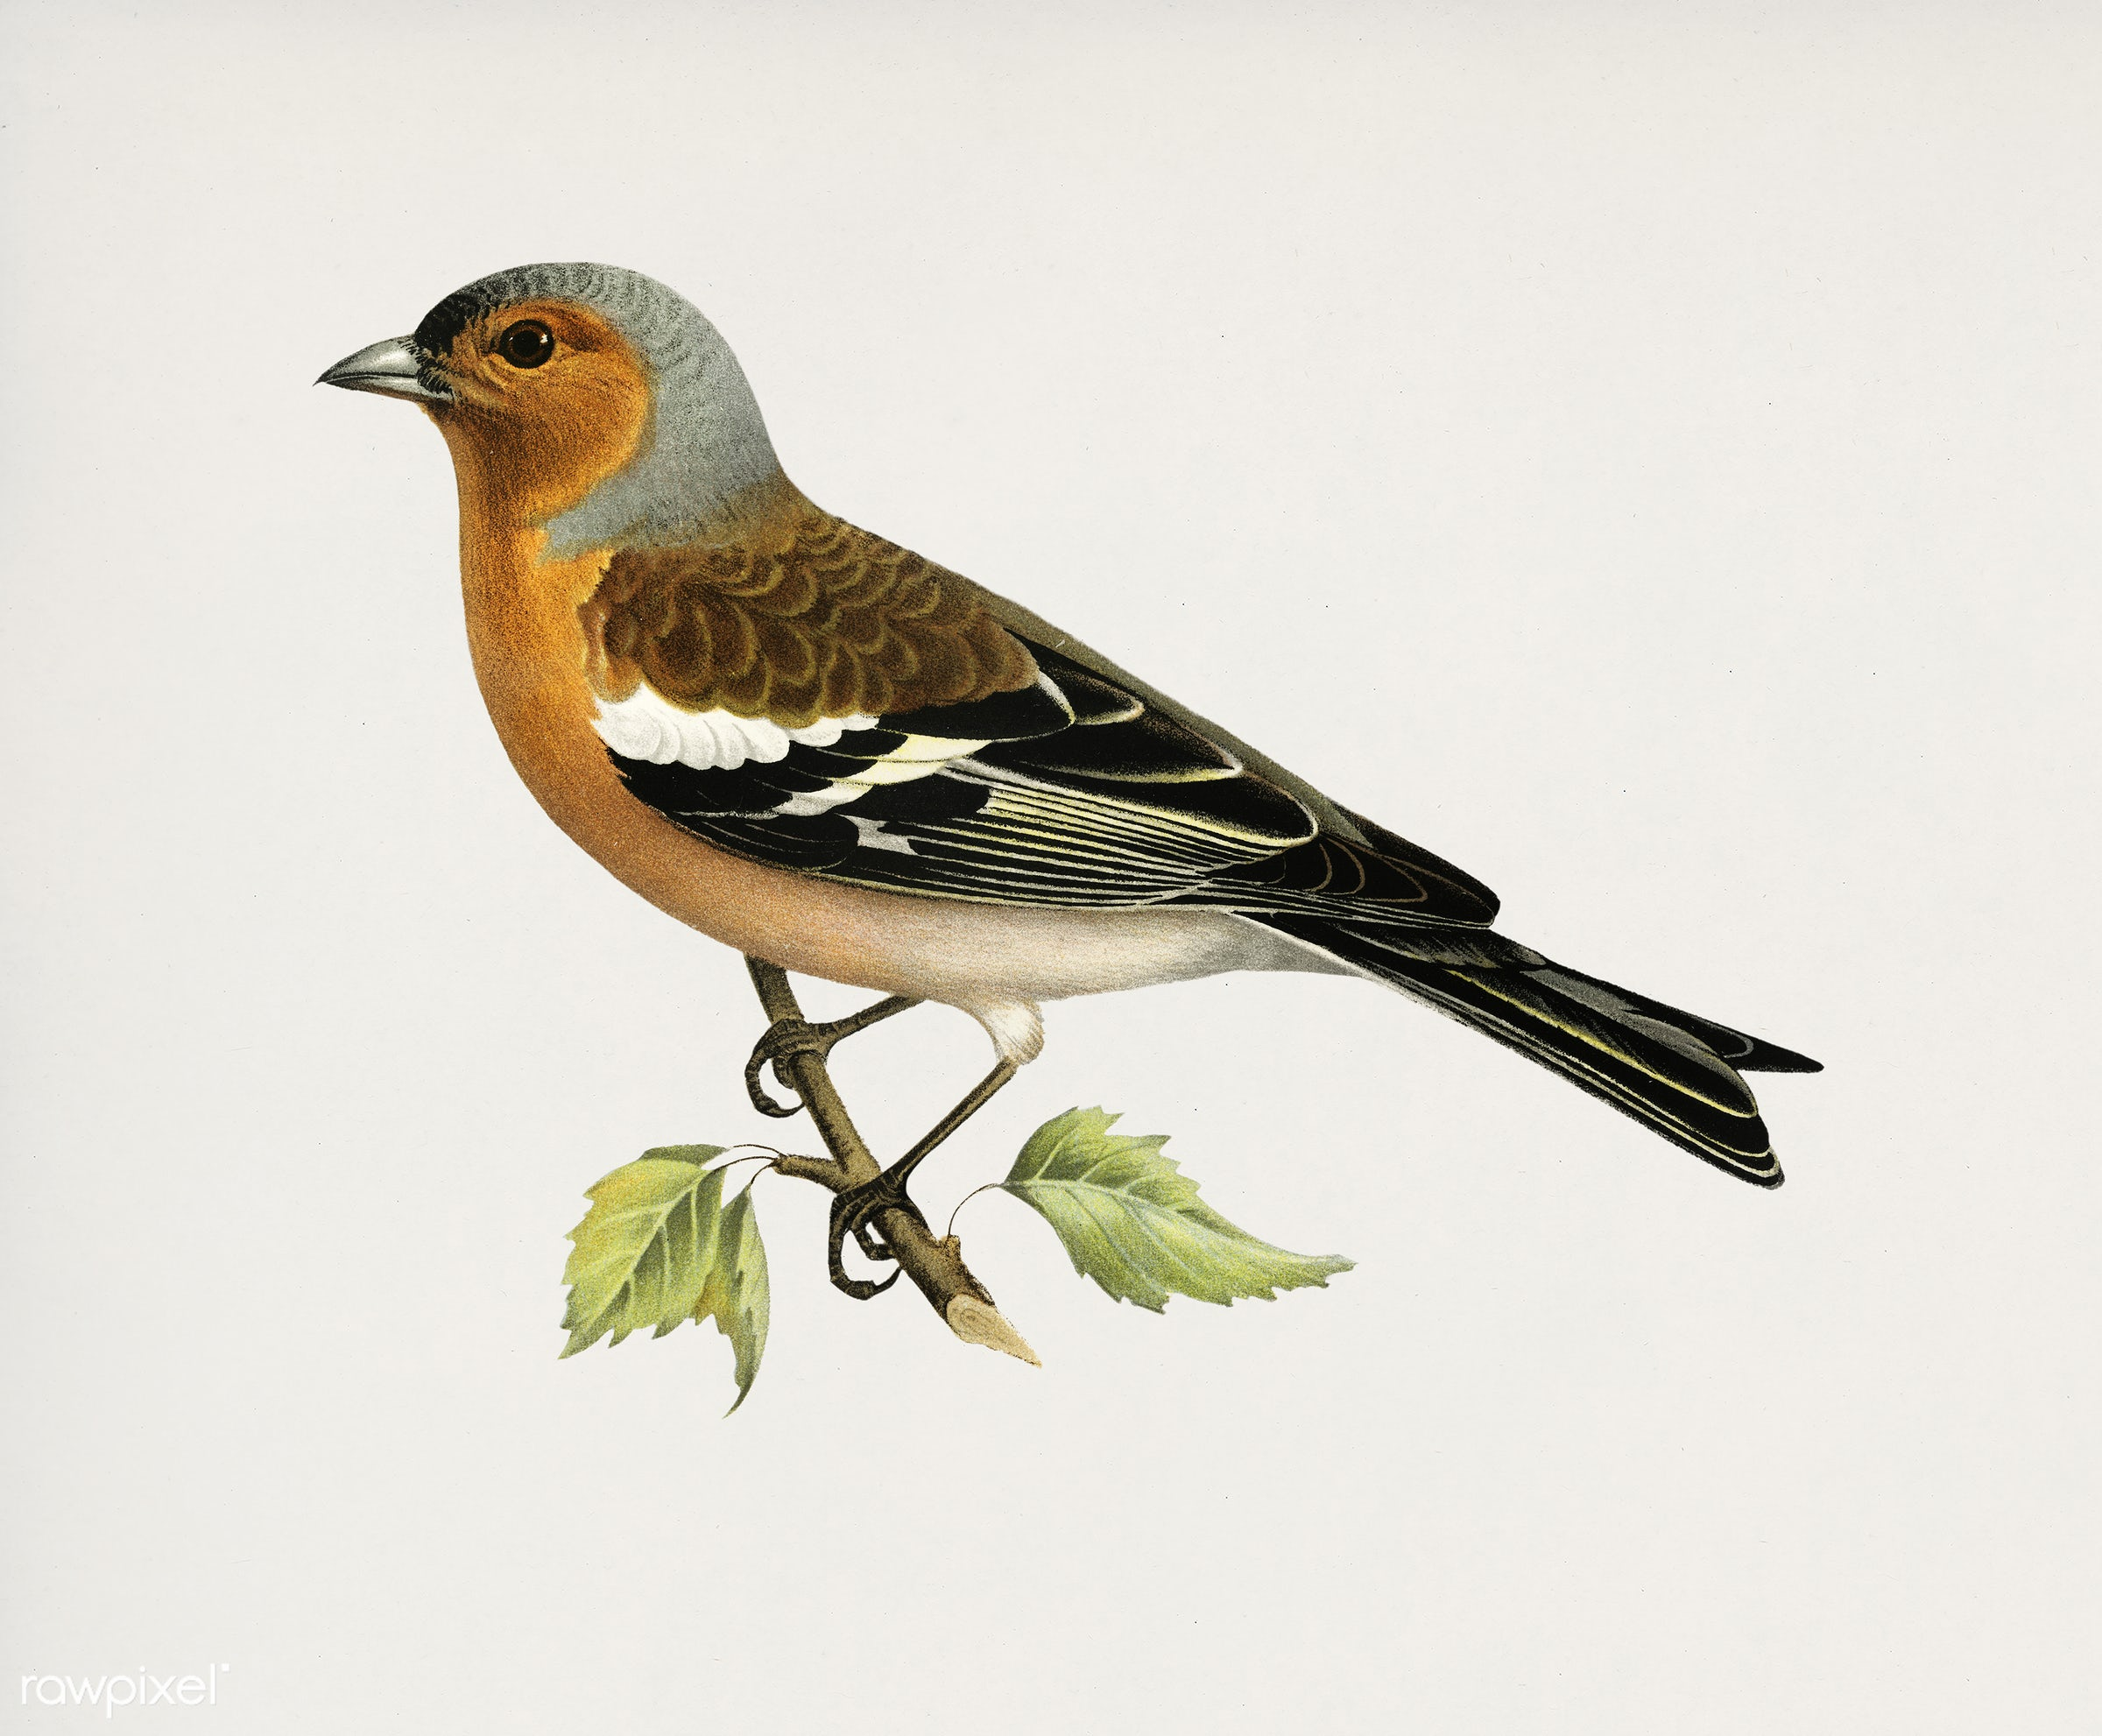 Chaffinch male (Fringilla coelebs) illustrated by the von Wright brothers. Digitally enhanced from our own 1929 folio...